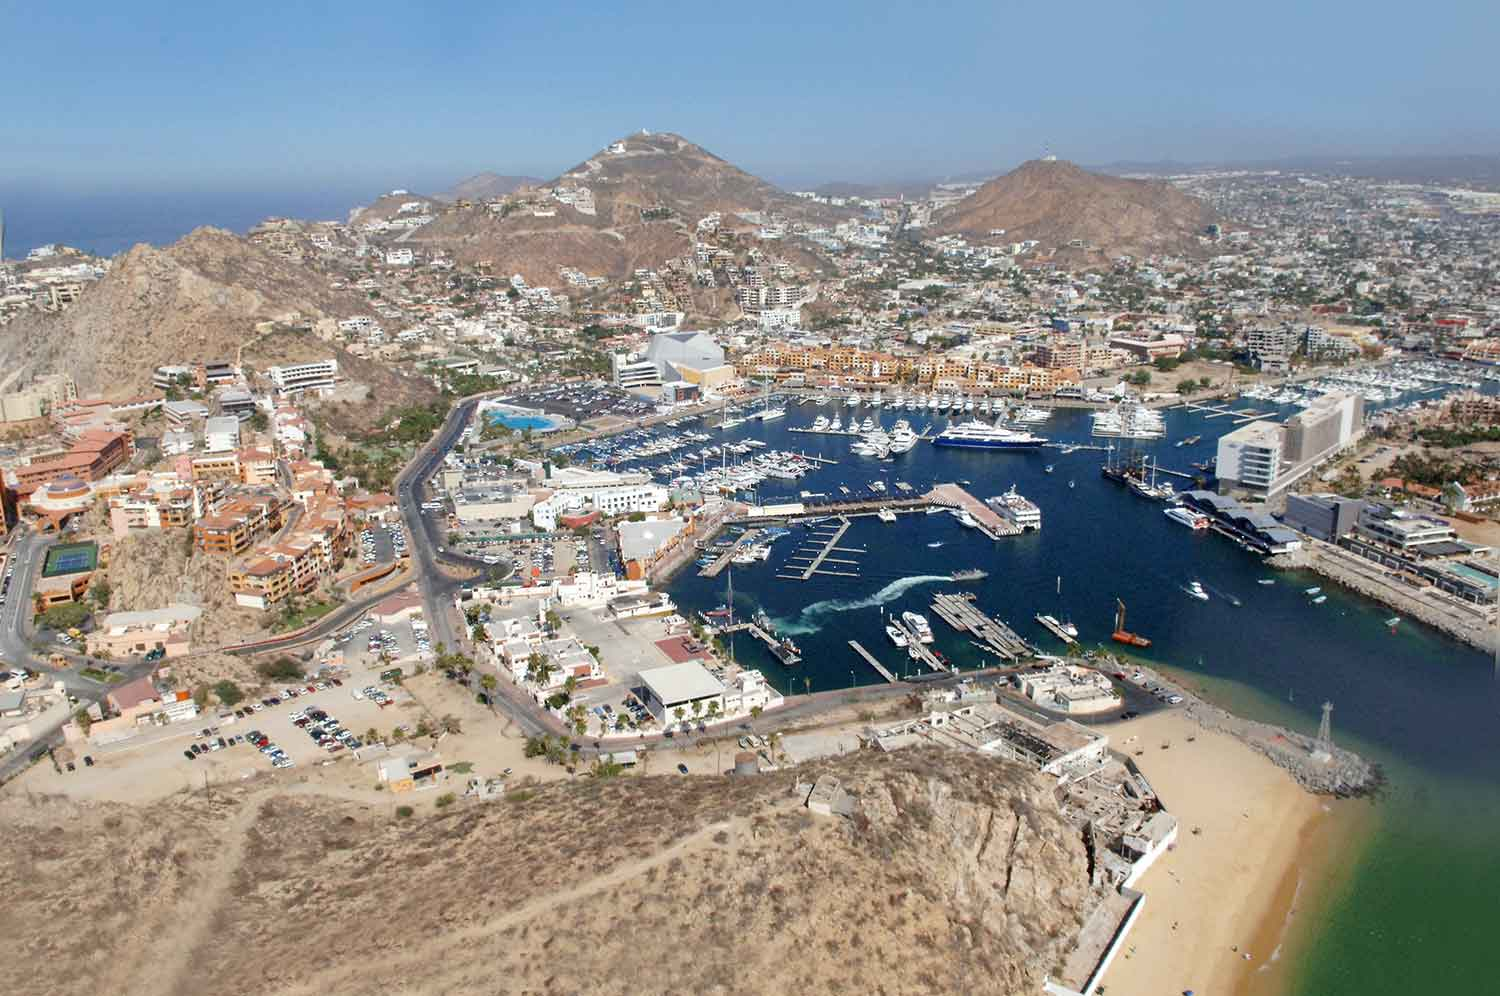 cabo-marina-town-aerial-2017-2